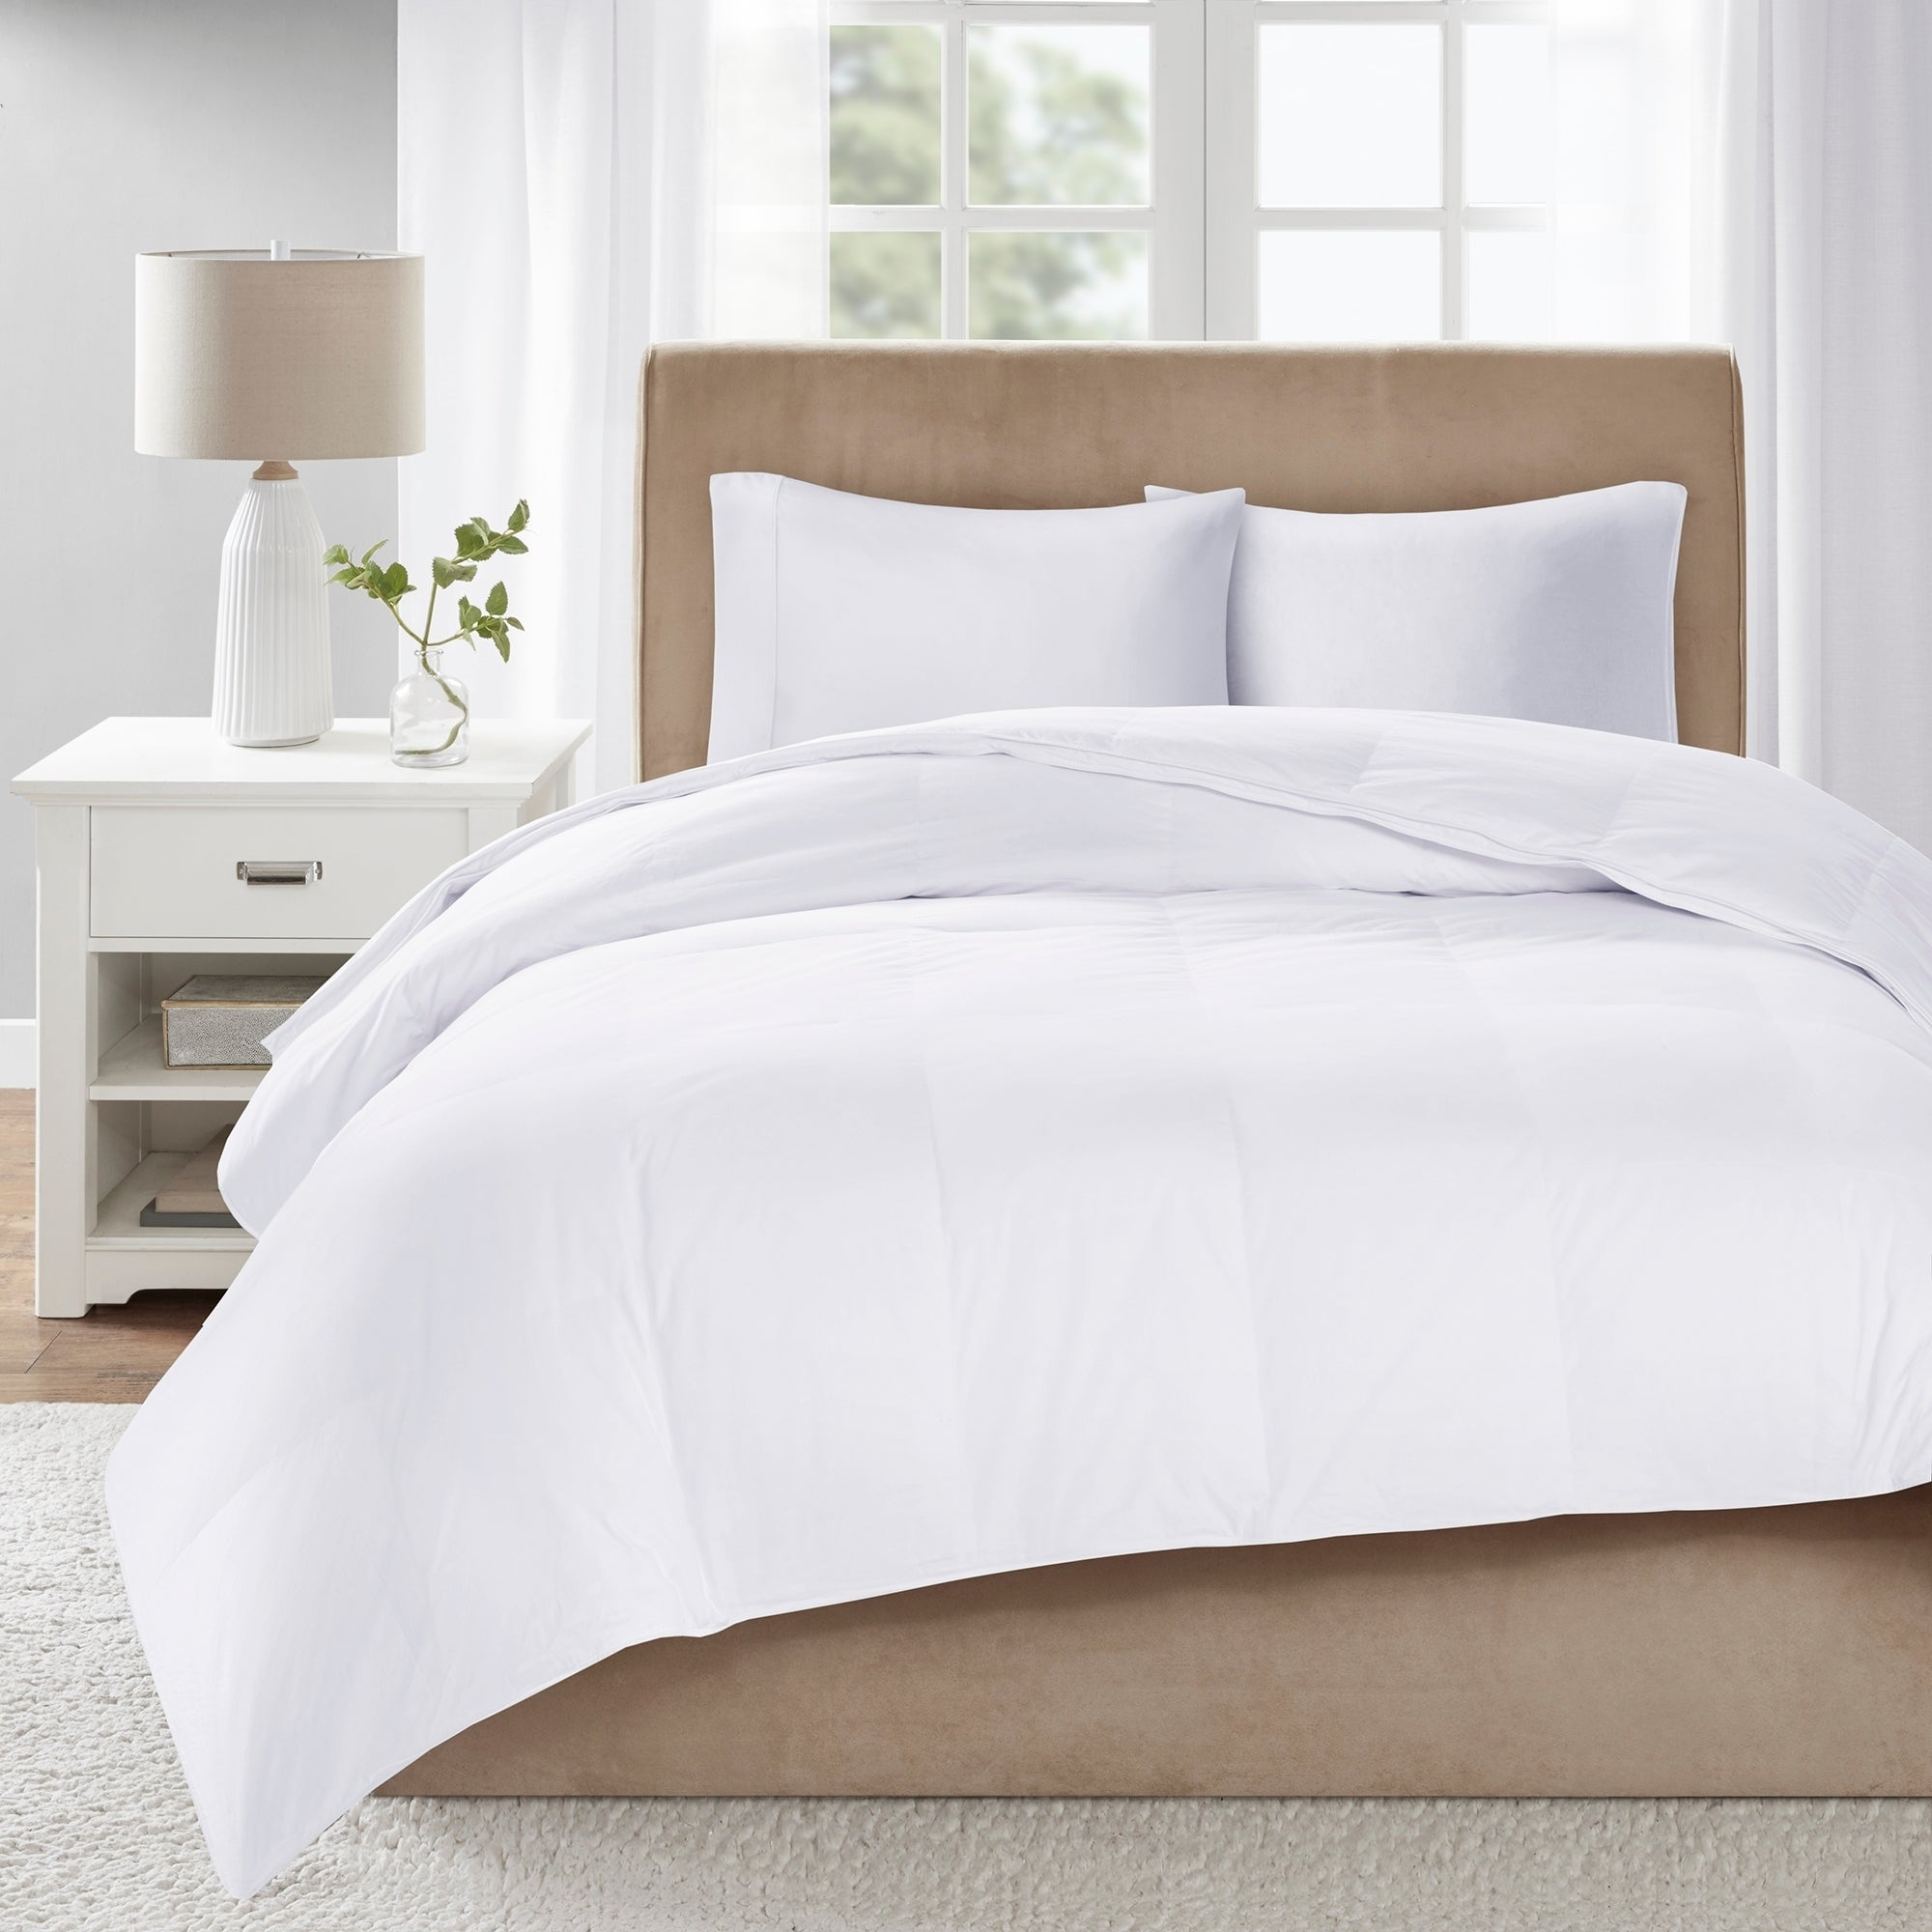 True North By Sleep Philosophy Level 3 White 300 Thread Count Cotton Sateen White Down Comforter With 3m Scotchgard On Sale Overstock 20689728